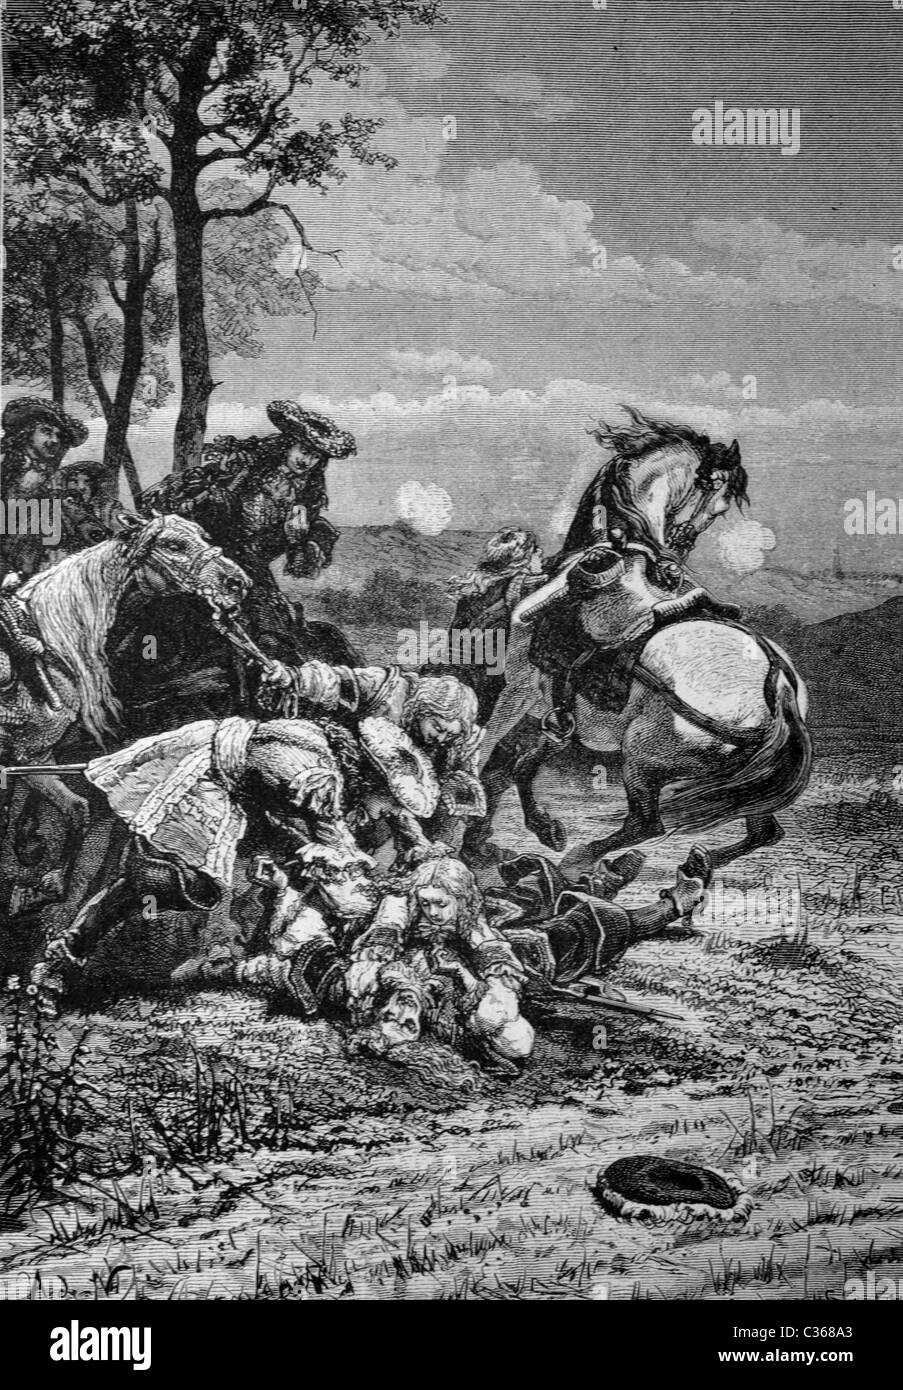 Dead of marshal Turenne at Sasbach, 27.7.1675, historical illustration - Stock Image